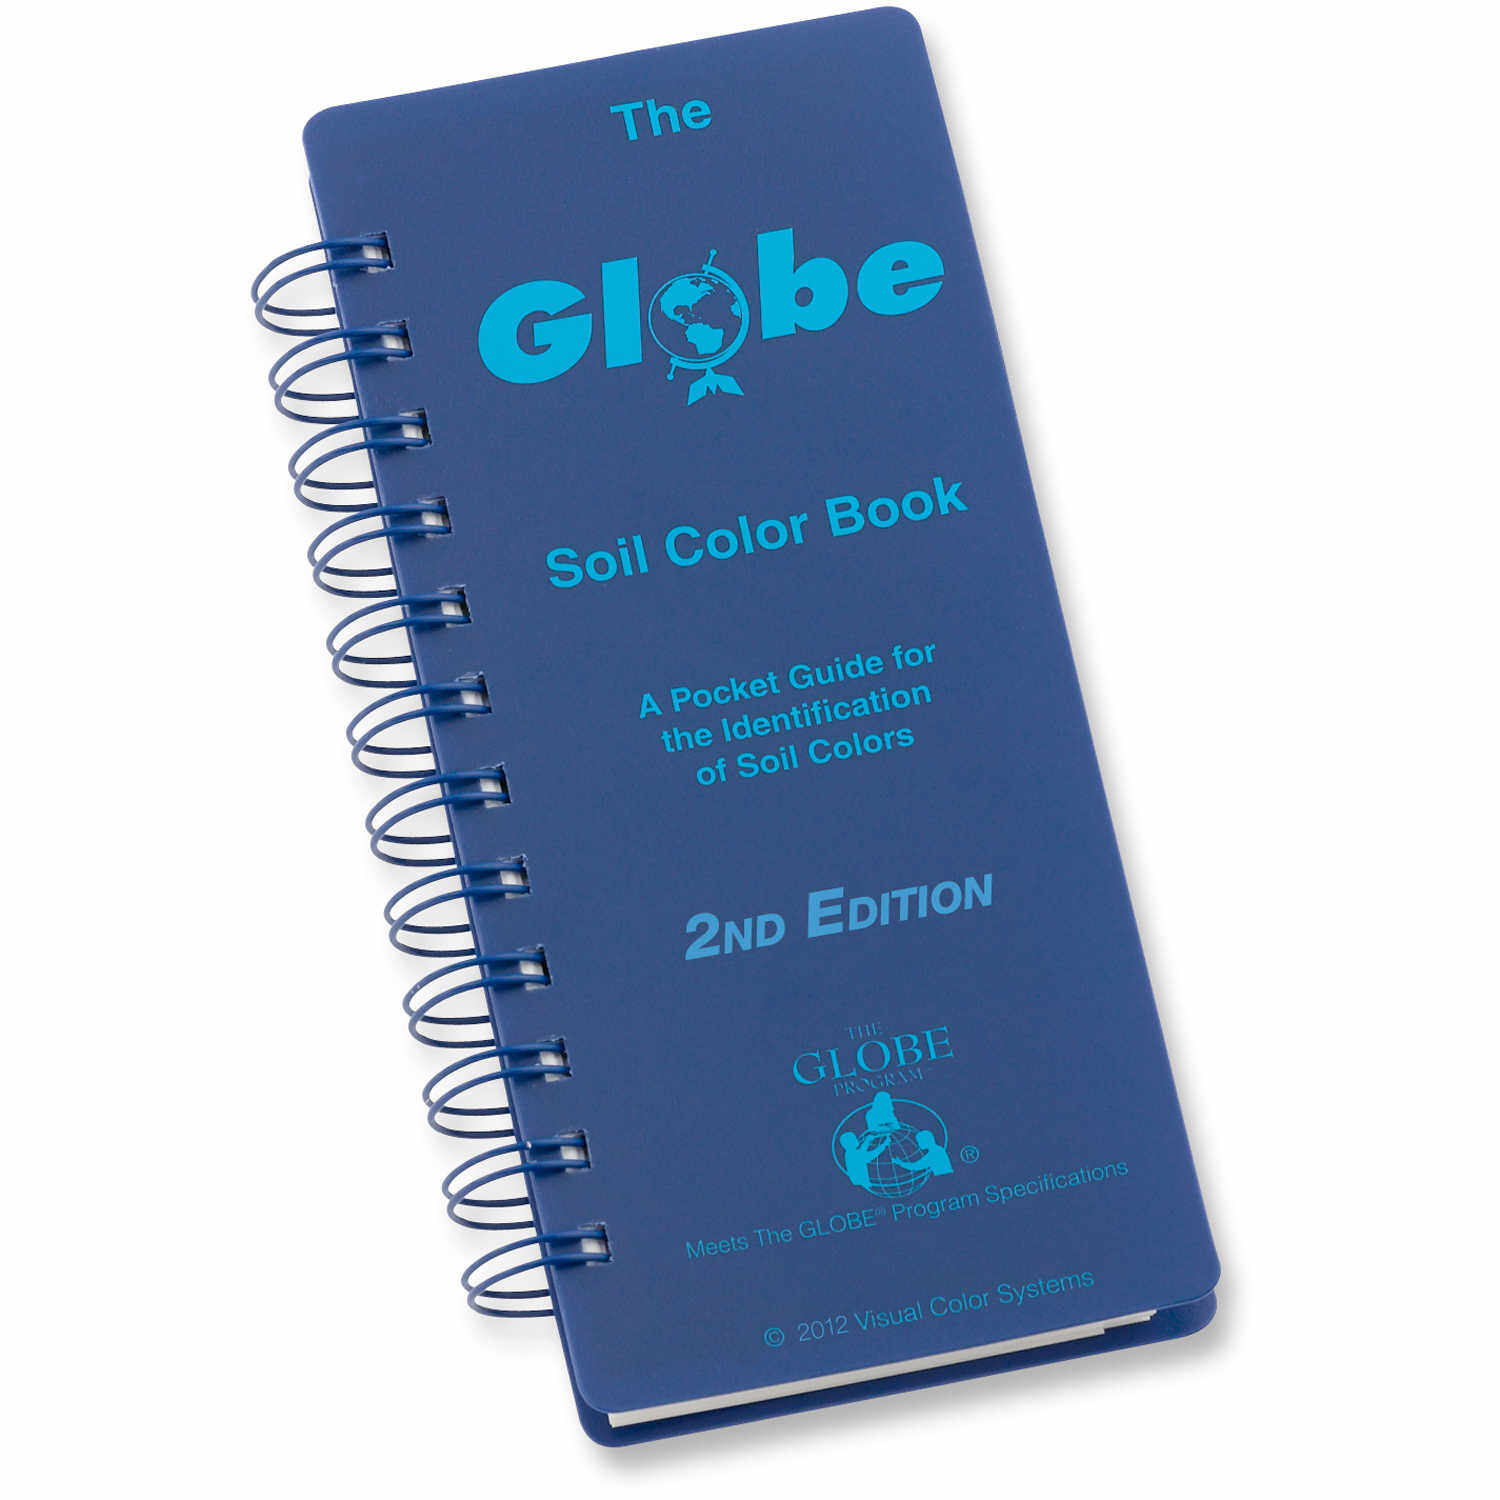 The Globe Soil Color Book | Forestry Suppliers, Inc.